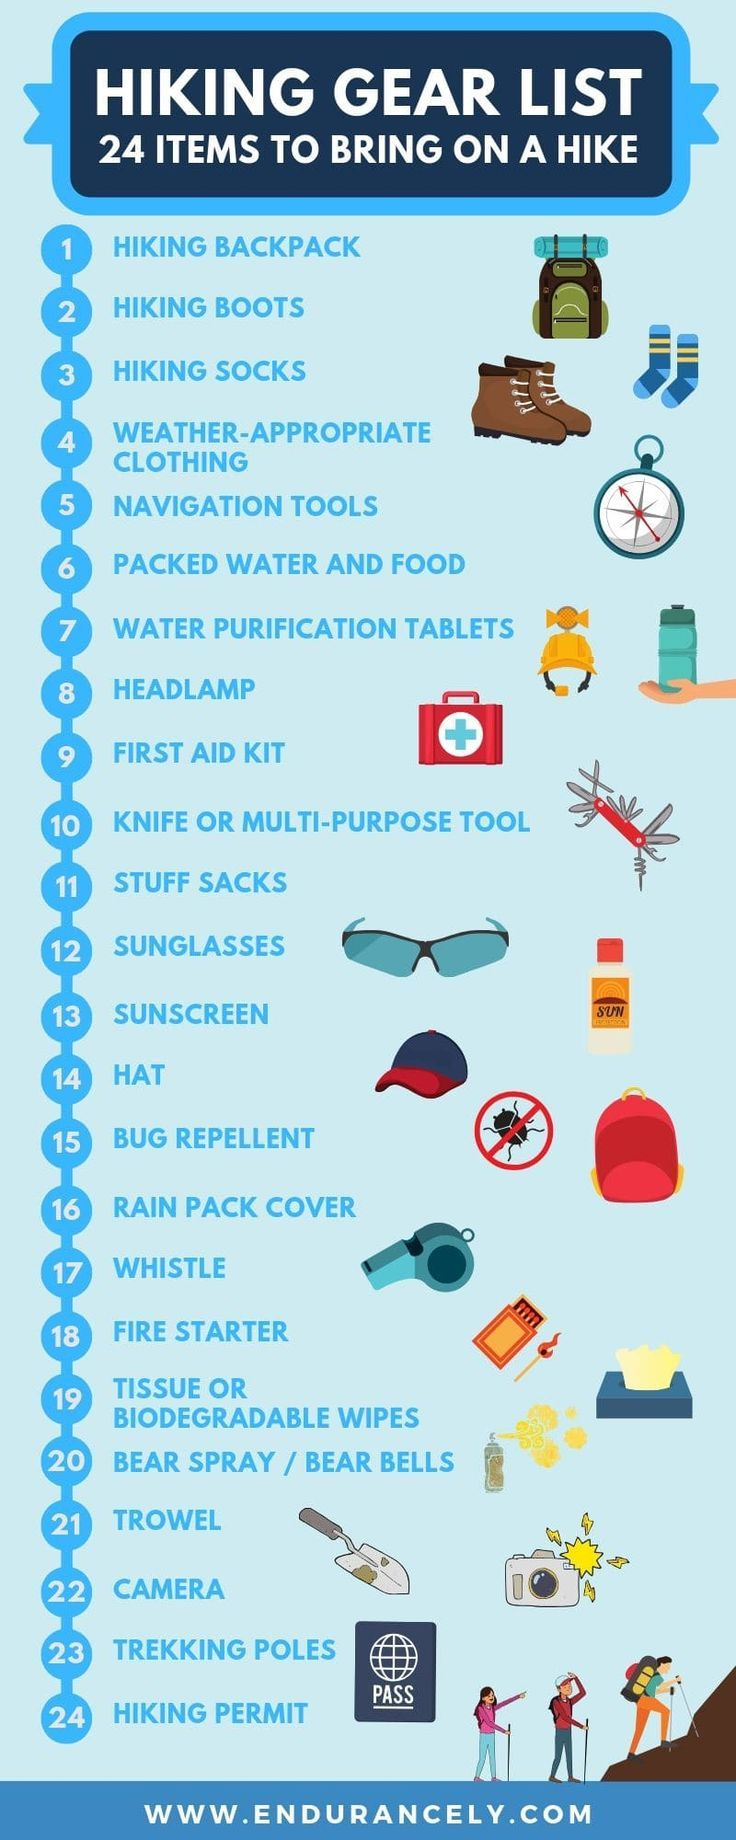 Photo of Hiking Gear List: 24 Items To Bring On A Hike